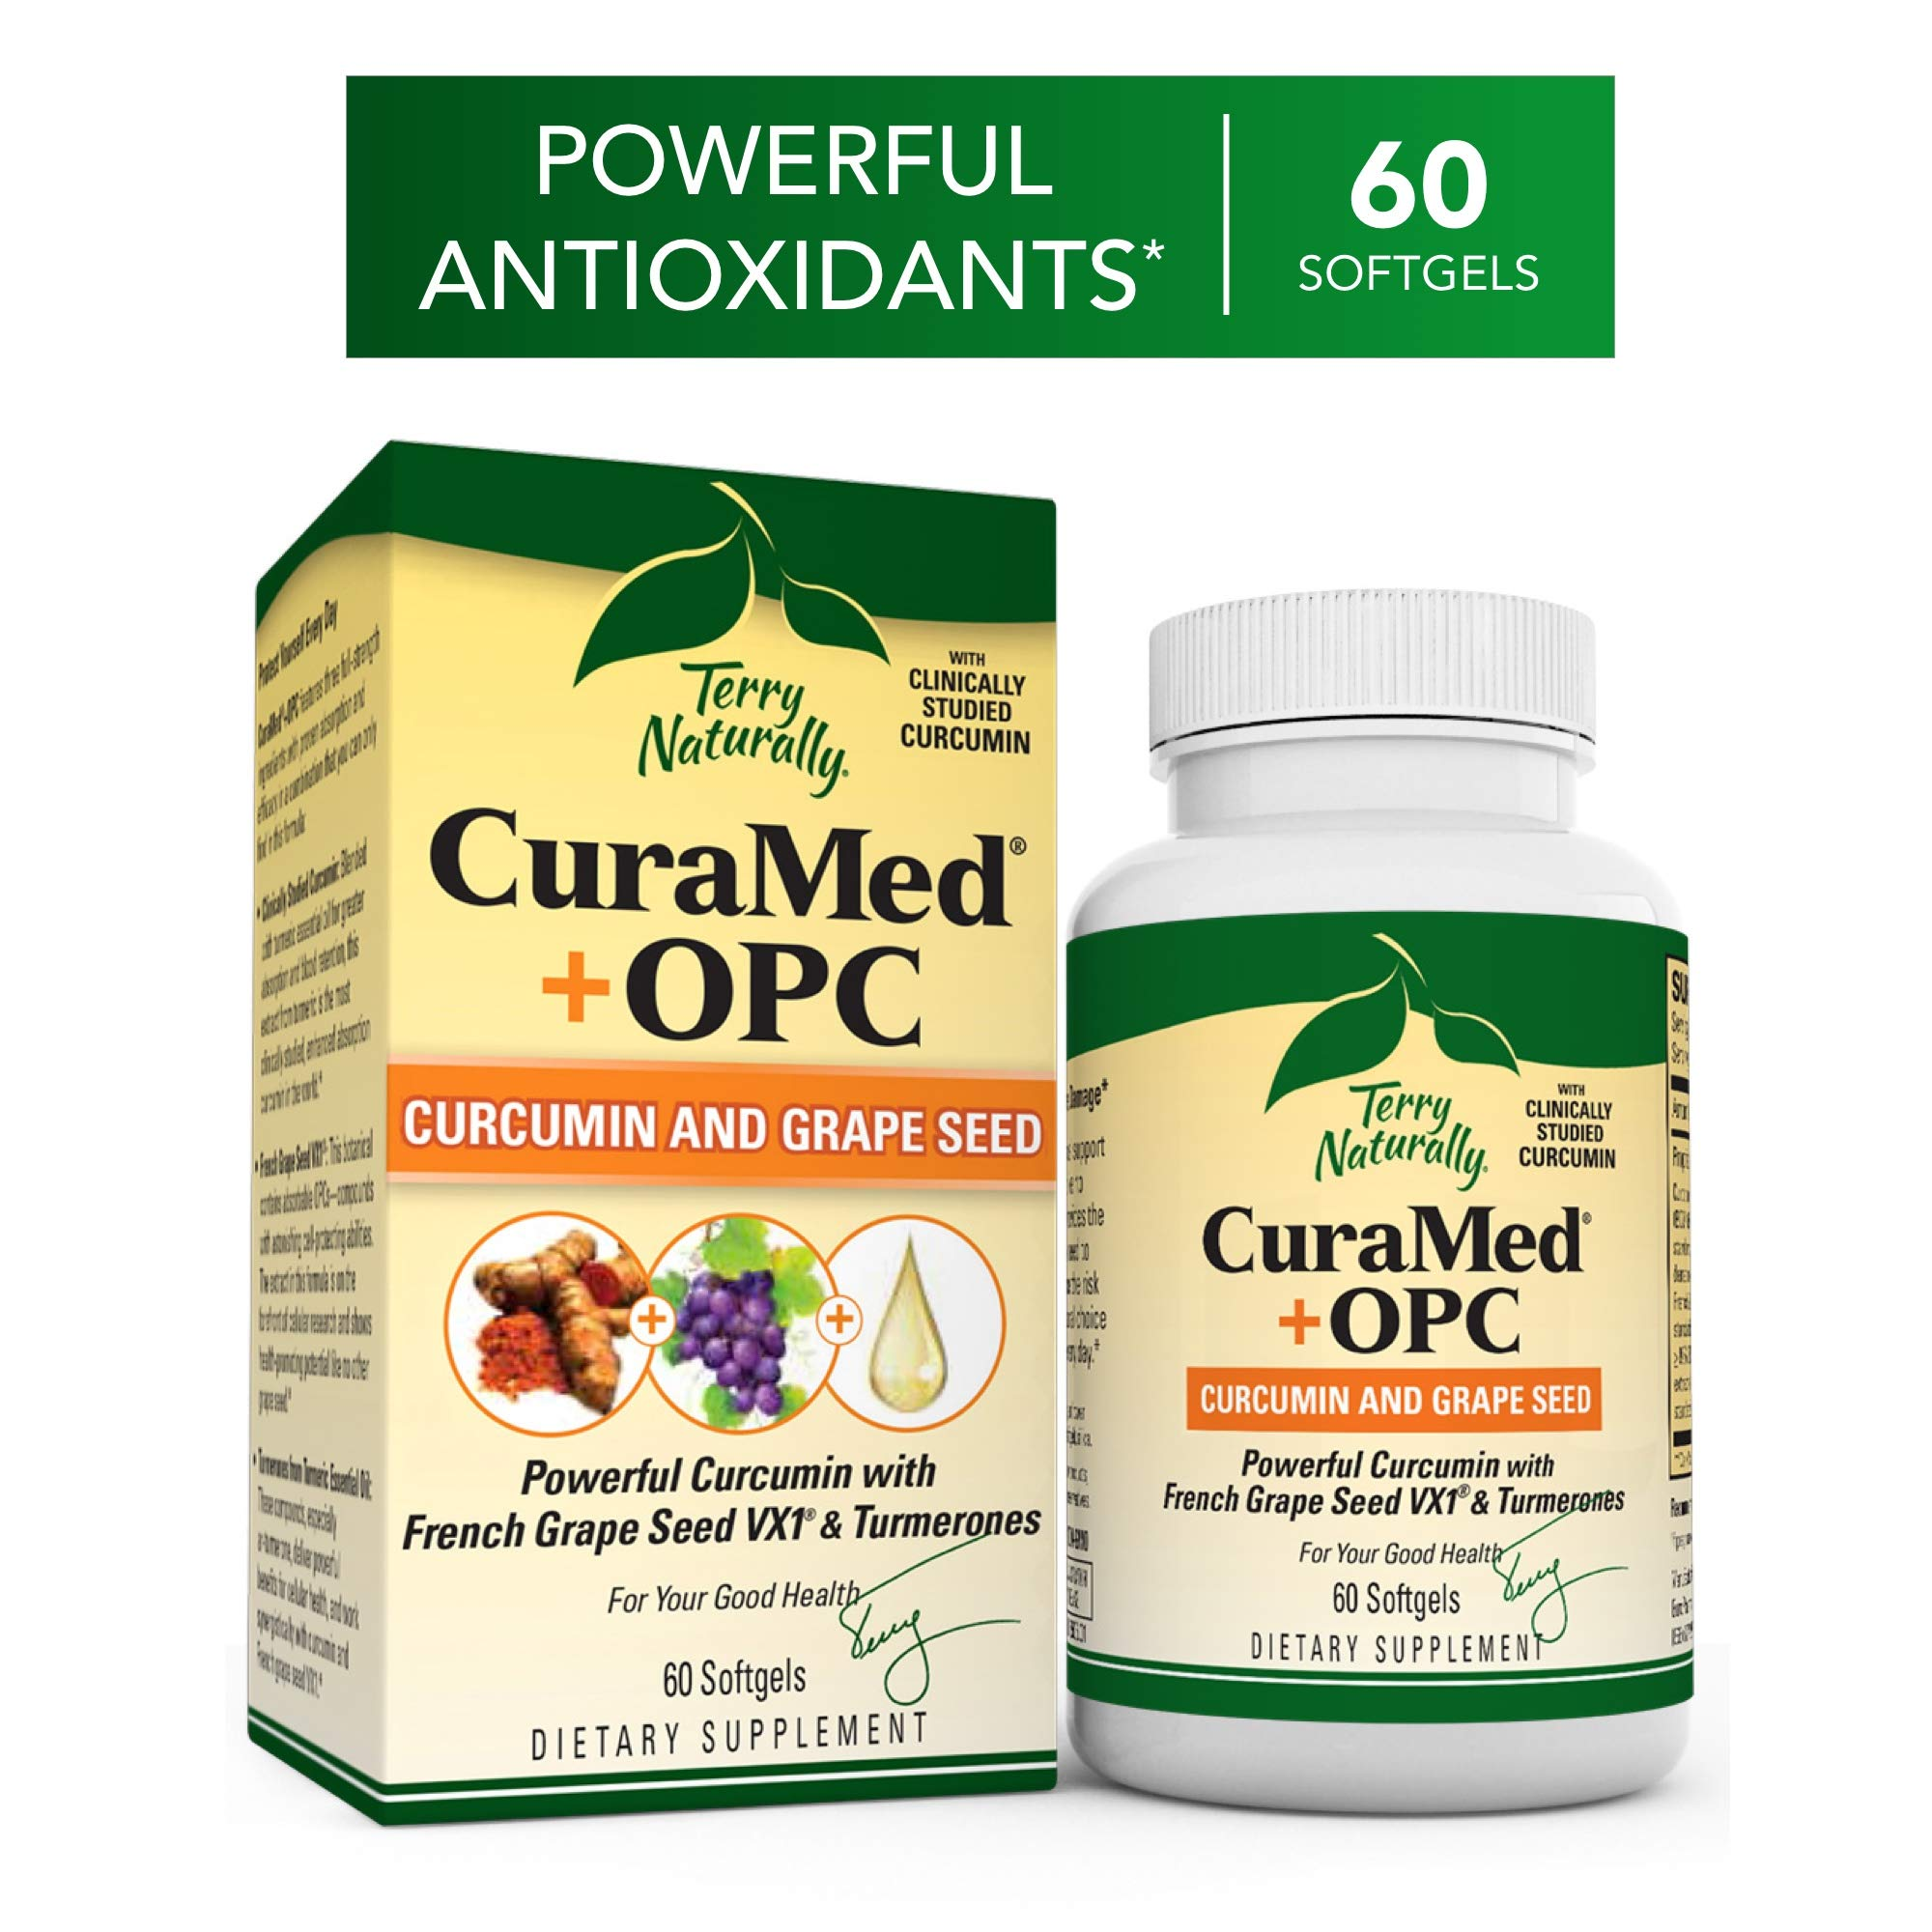 Terry Naturally CuraMed + OPC - 60 Softgels - BCM-95 Curcumin & French Grape Seed VX1 Supplement, Supports Brain, Heart, Colon, Breast, Prostate & Liver Health - Non-GMO, Gluten-Free - 30 Servings by Terry Naturally